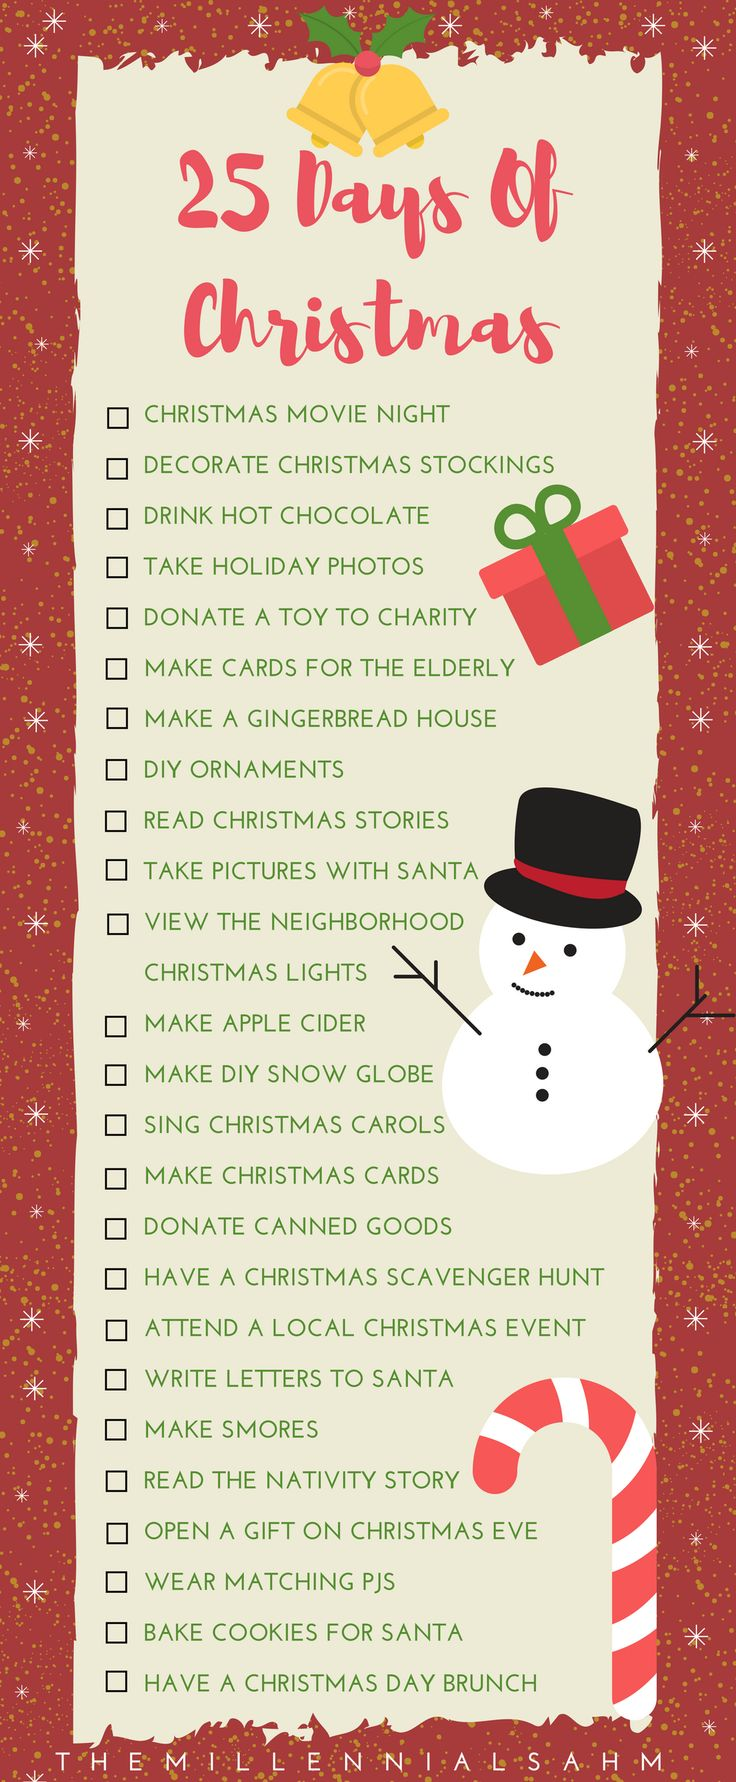 "Now that our son is actually old enough to partake in some of the Christmas festivities, I created a ""25 Days of Christmas"" bucket list that's full of activities the entire family will love. Christmas Activities, Christmas Traditions, Christmas Bucket list, Christmas Family Traditions, Christmas Activities For Kids, Christmas Traditions To Start. Advent Calendar"